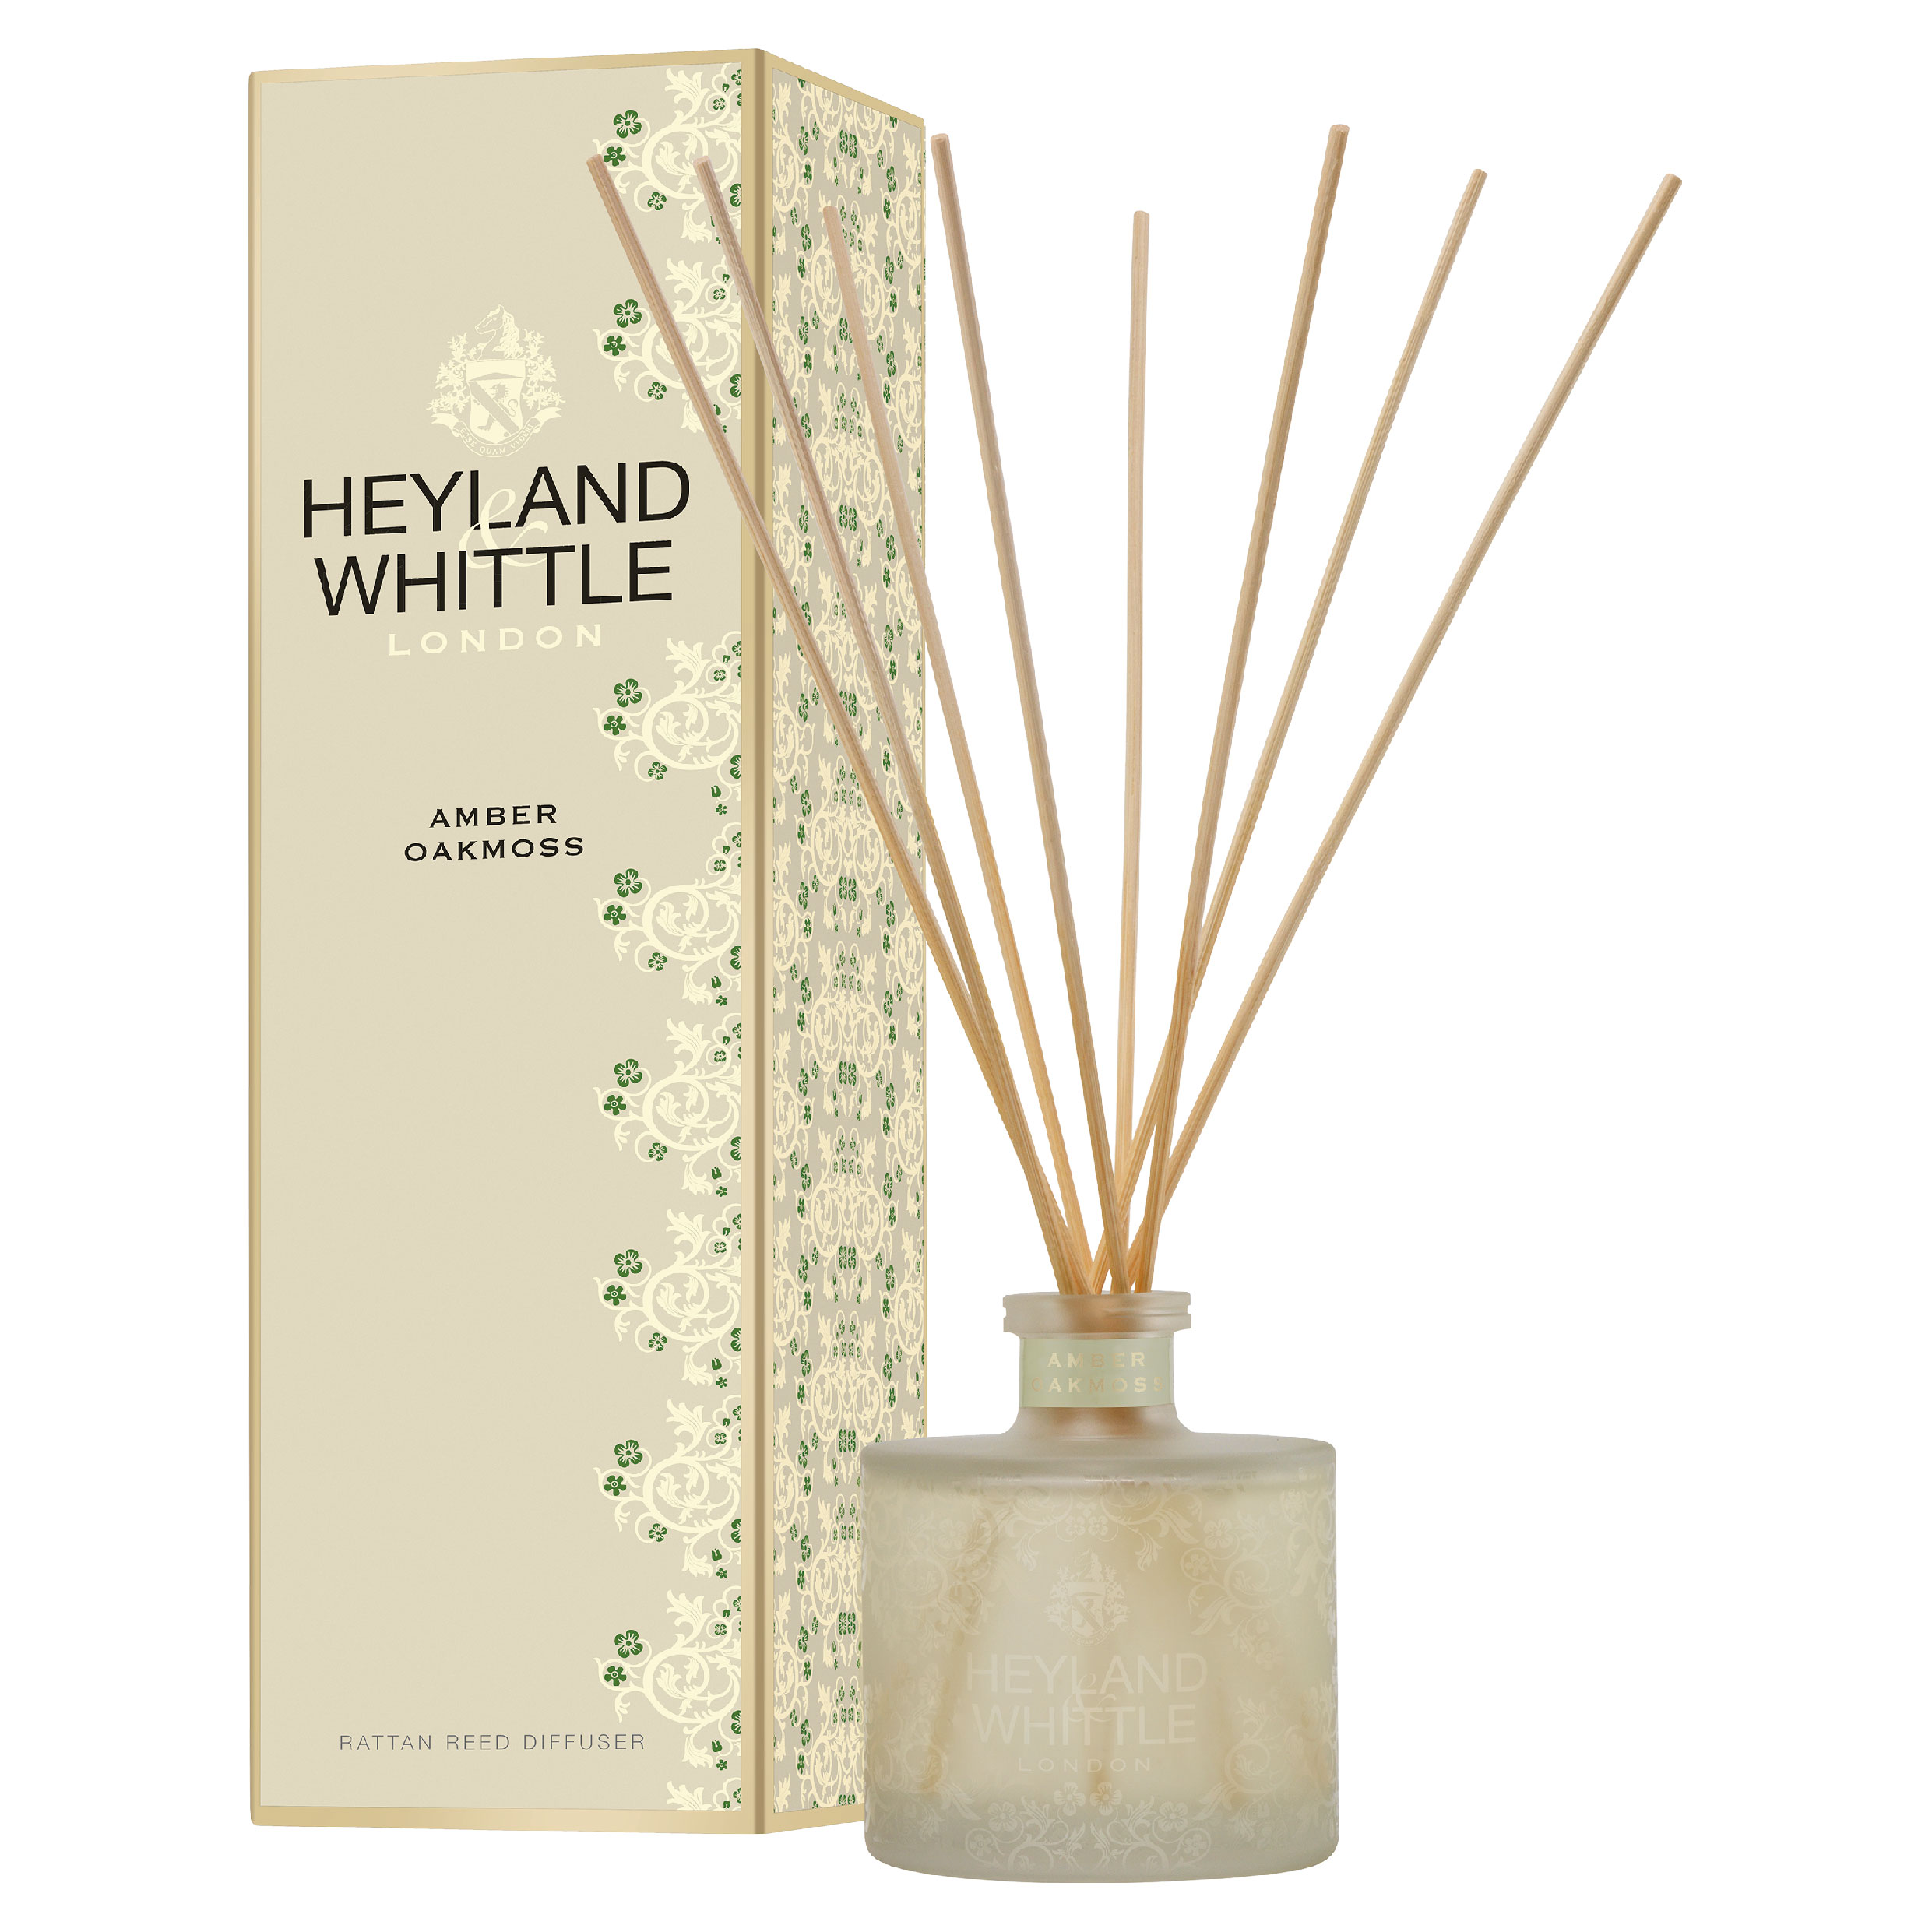 Heyland & Whittle Gold Classic Amber Oakmoss Reed Diffuser 200ml